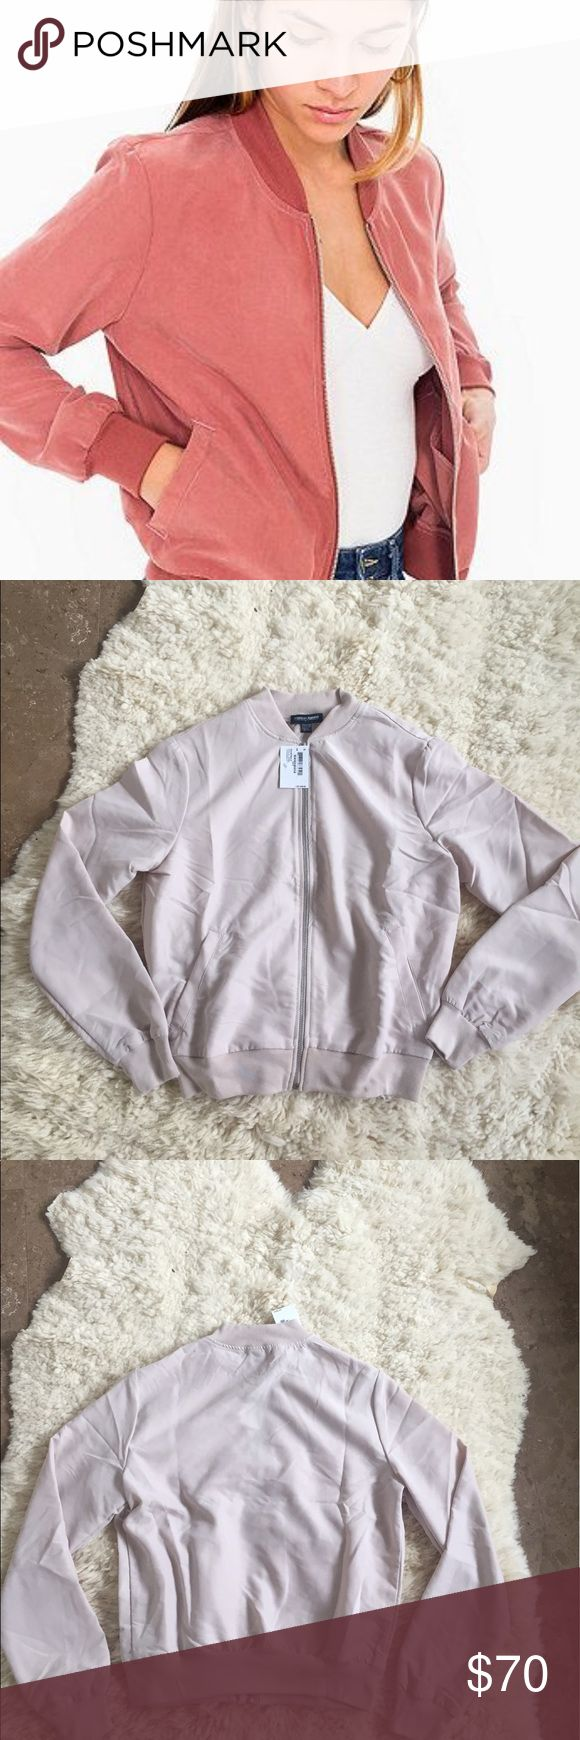 American Apparel Amelia Jacket! Note: the color is a dusty pink! This jacket is brand new with tags!  The first picture is from Pinterest, the last two are mine! Offers are welcome but no lowballs! American Apparel Jackets & Coats